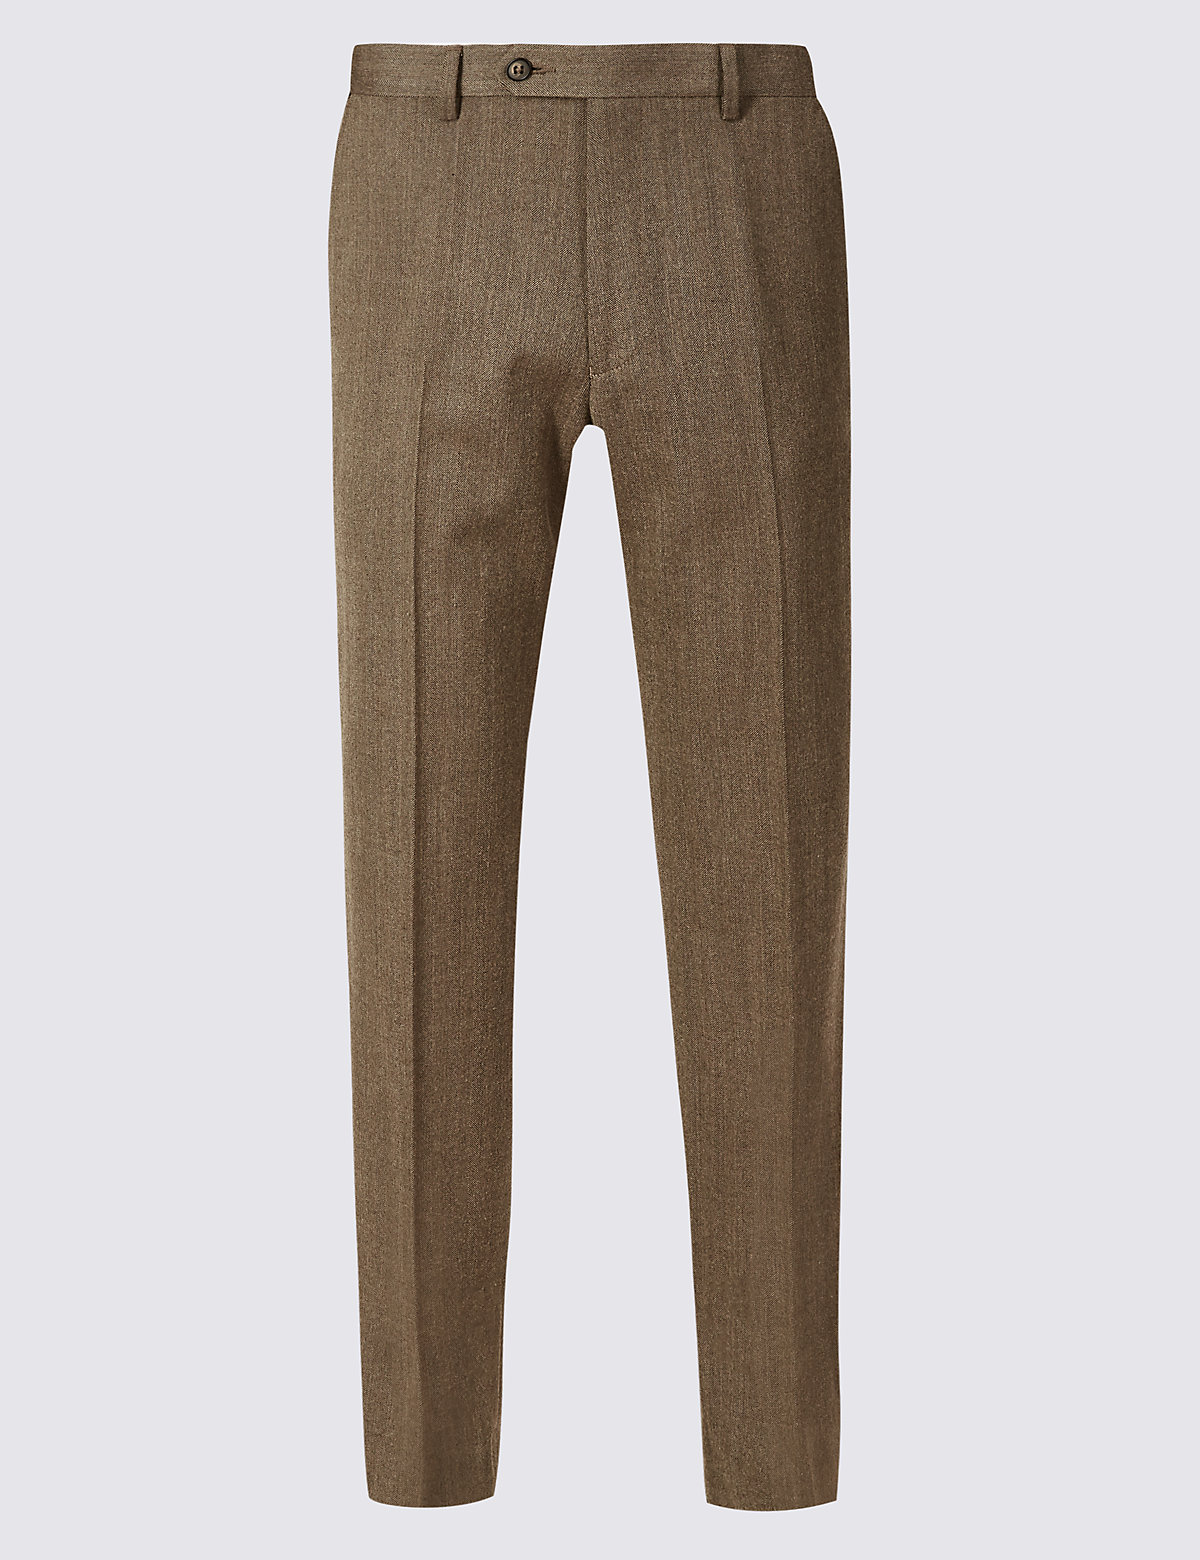 Marks & Spencer Neutral Tailored Fit Wool Blend Flat Front Trousers